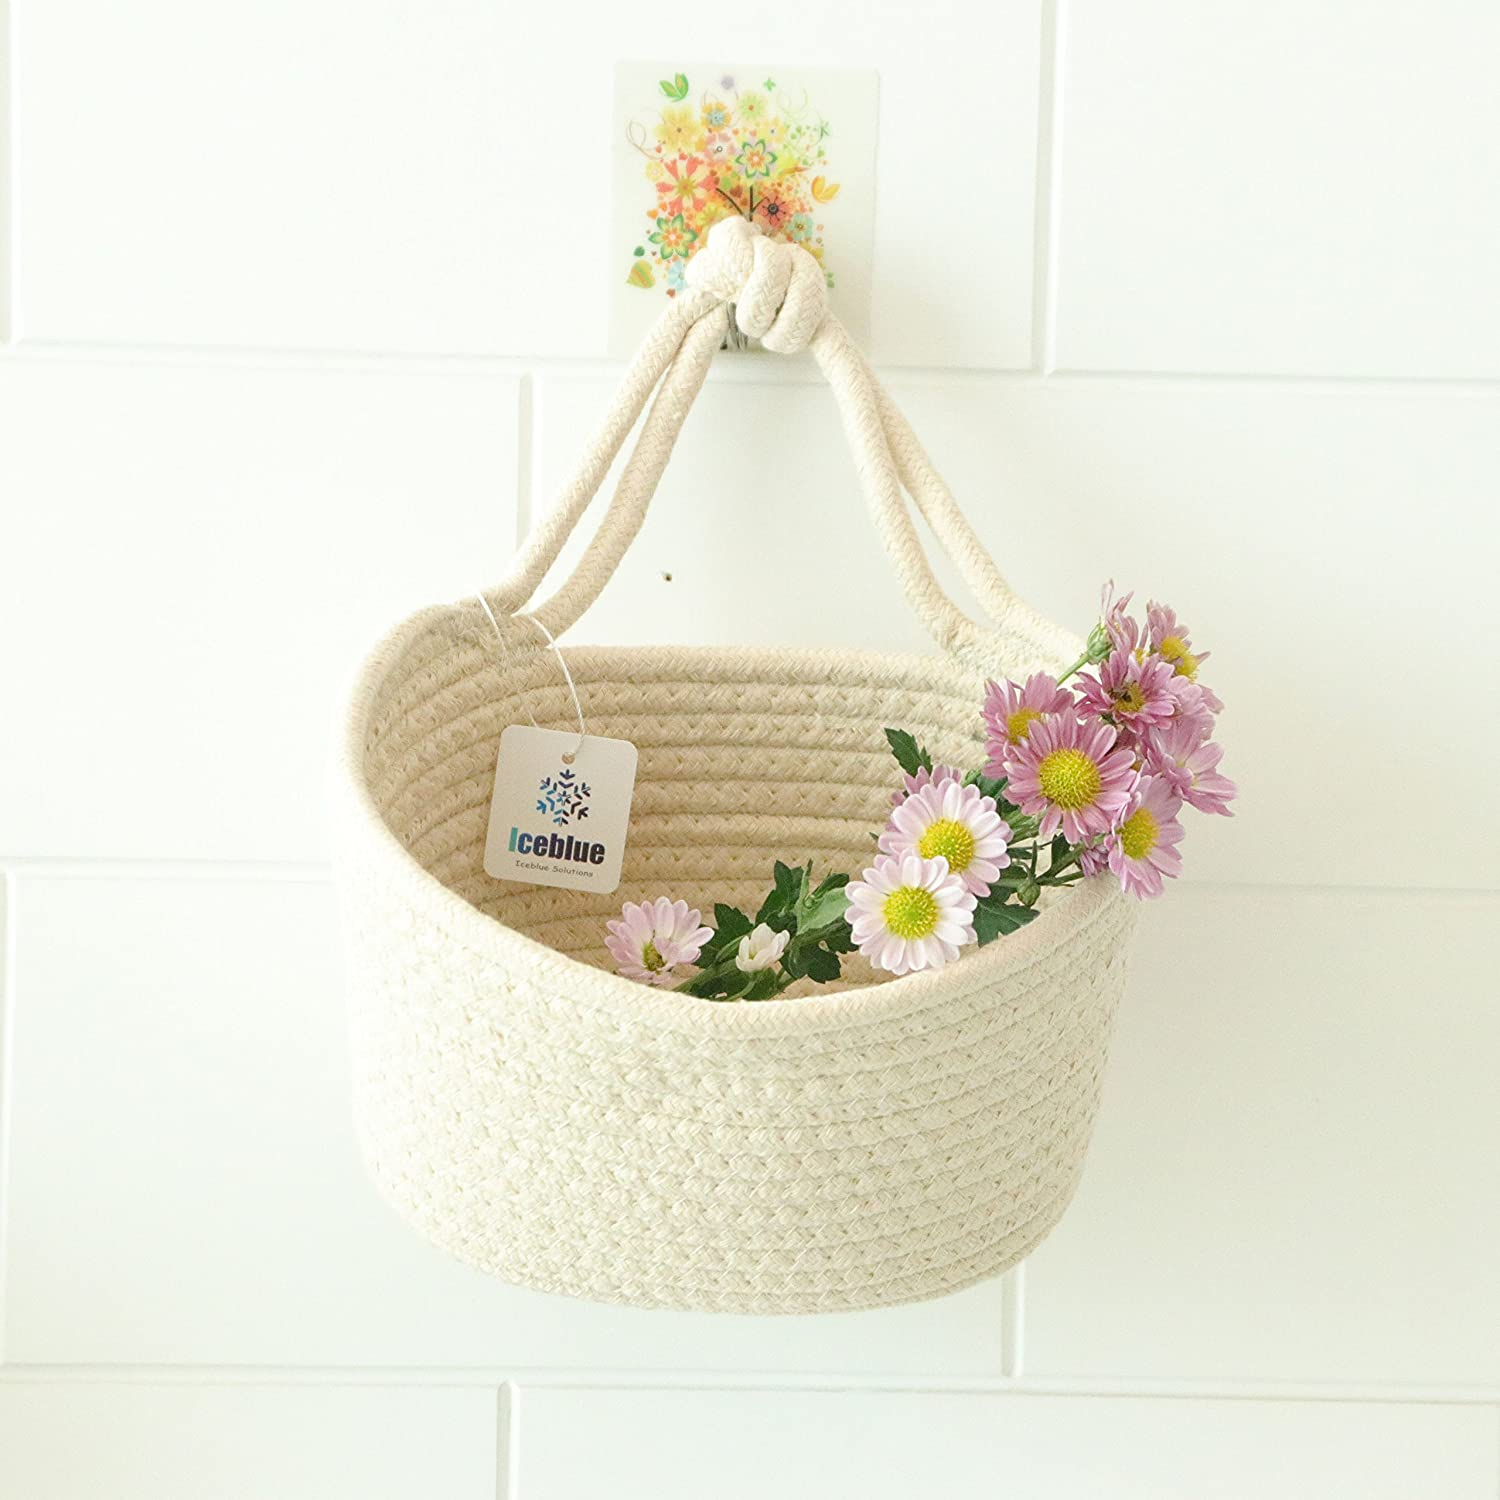 ICEBLUE 6''X4.5''Beige Round Cotton Rope Over Wall Door Closet Window Hanging Storage Basket The Best Time